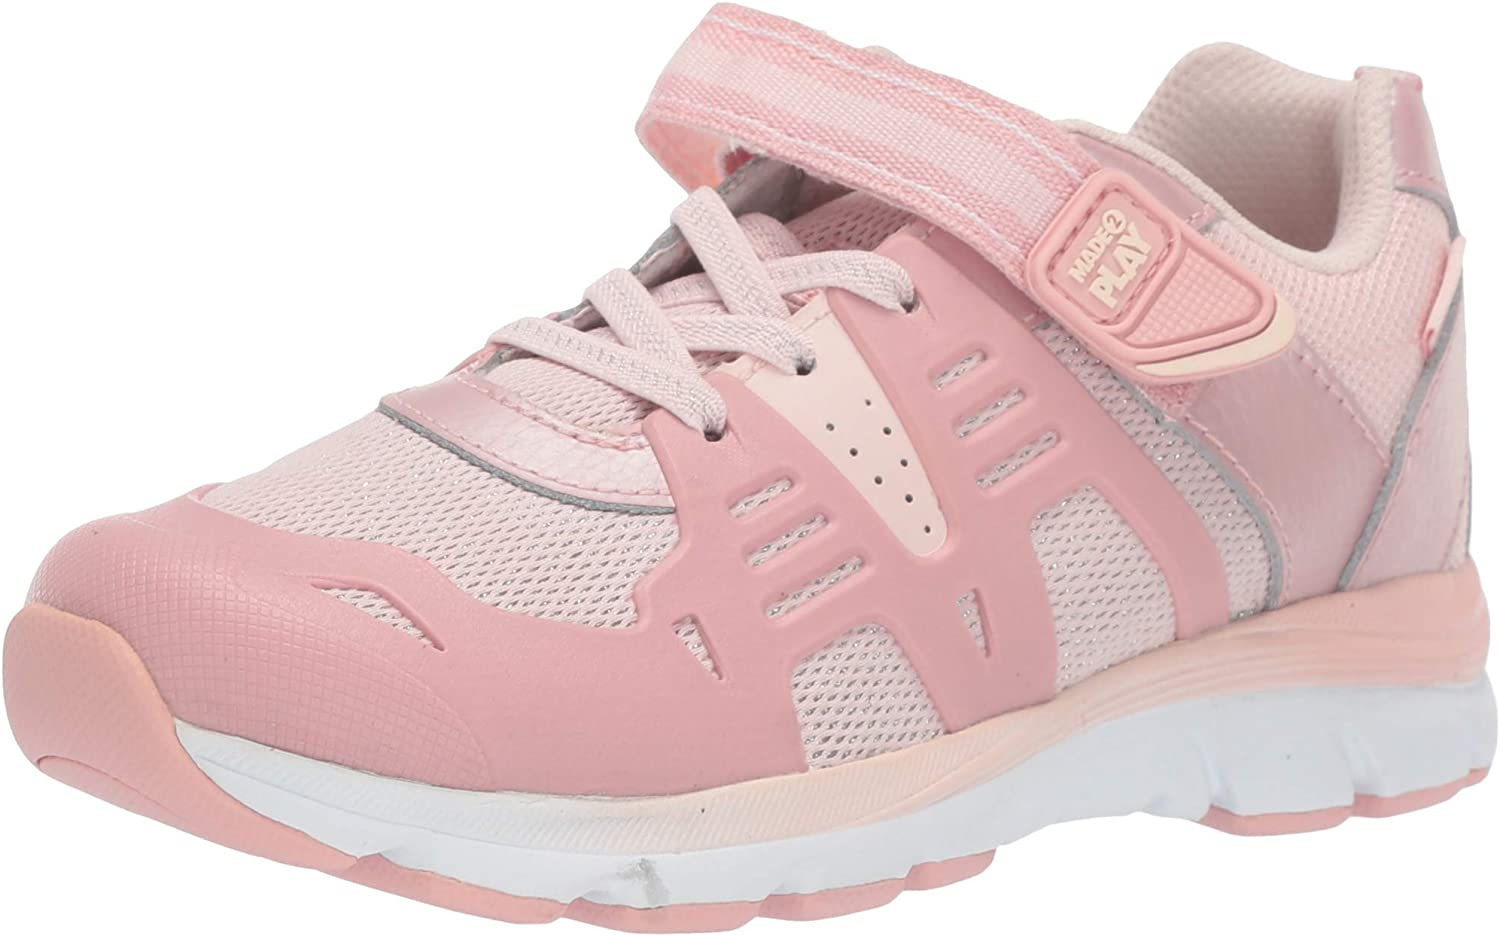 Stride Rite Special sale item Unisex-Child Made2play Ashton Special sale item Sneaker